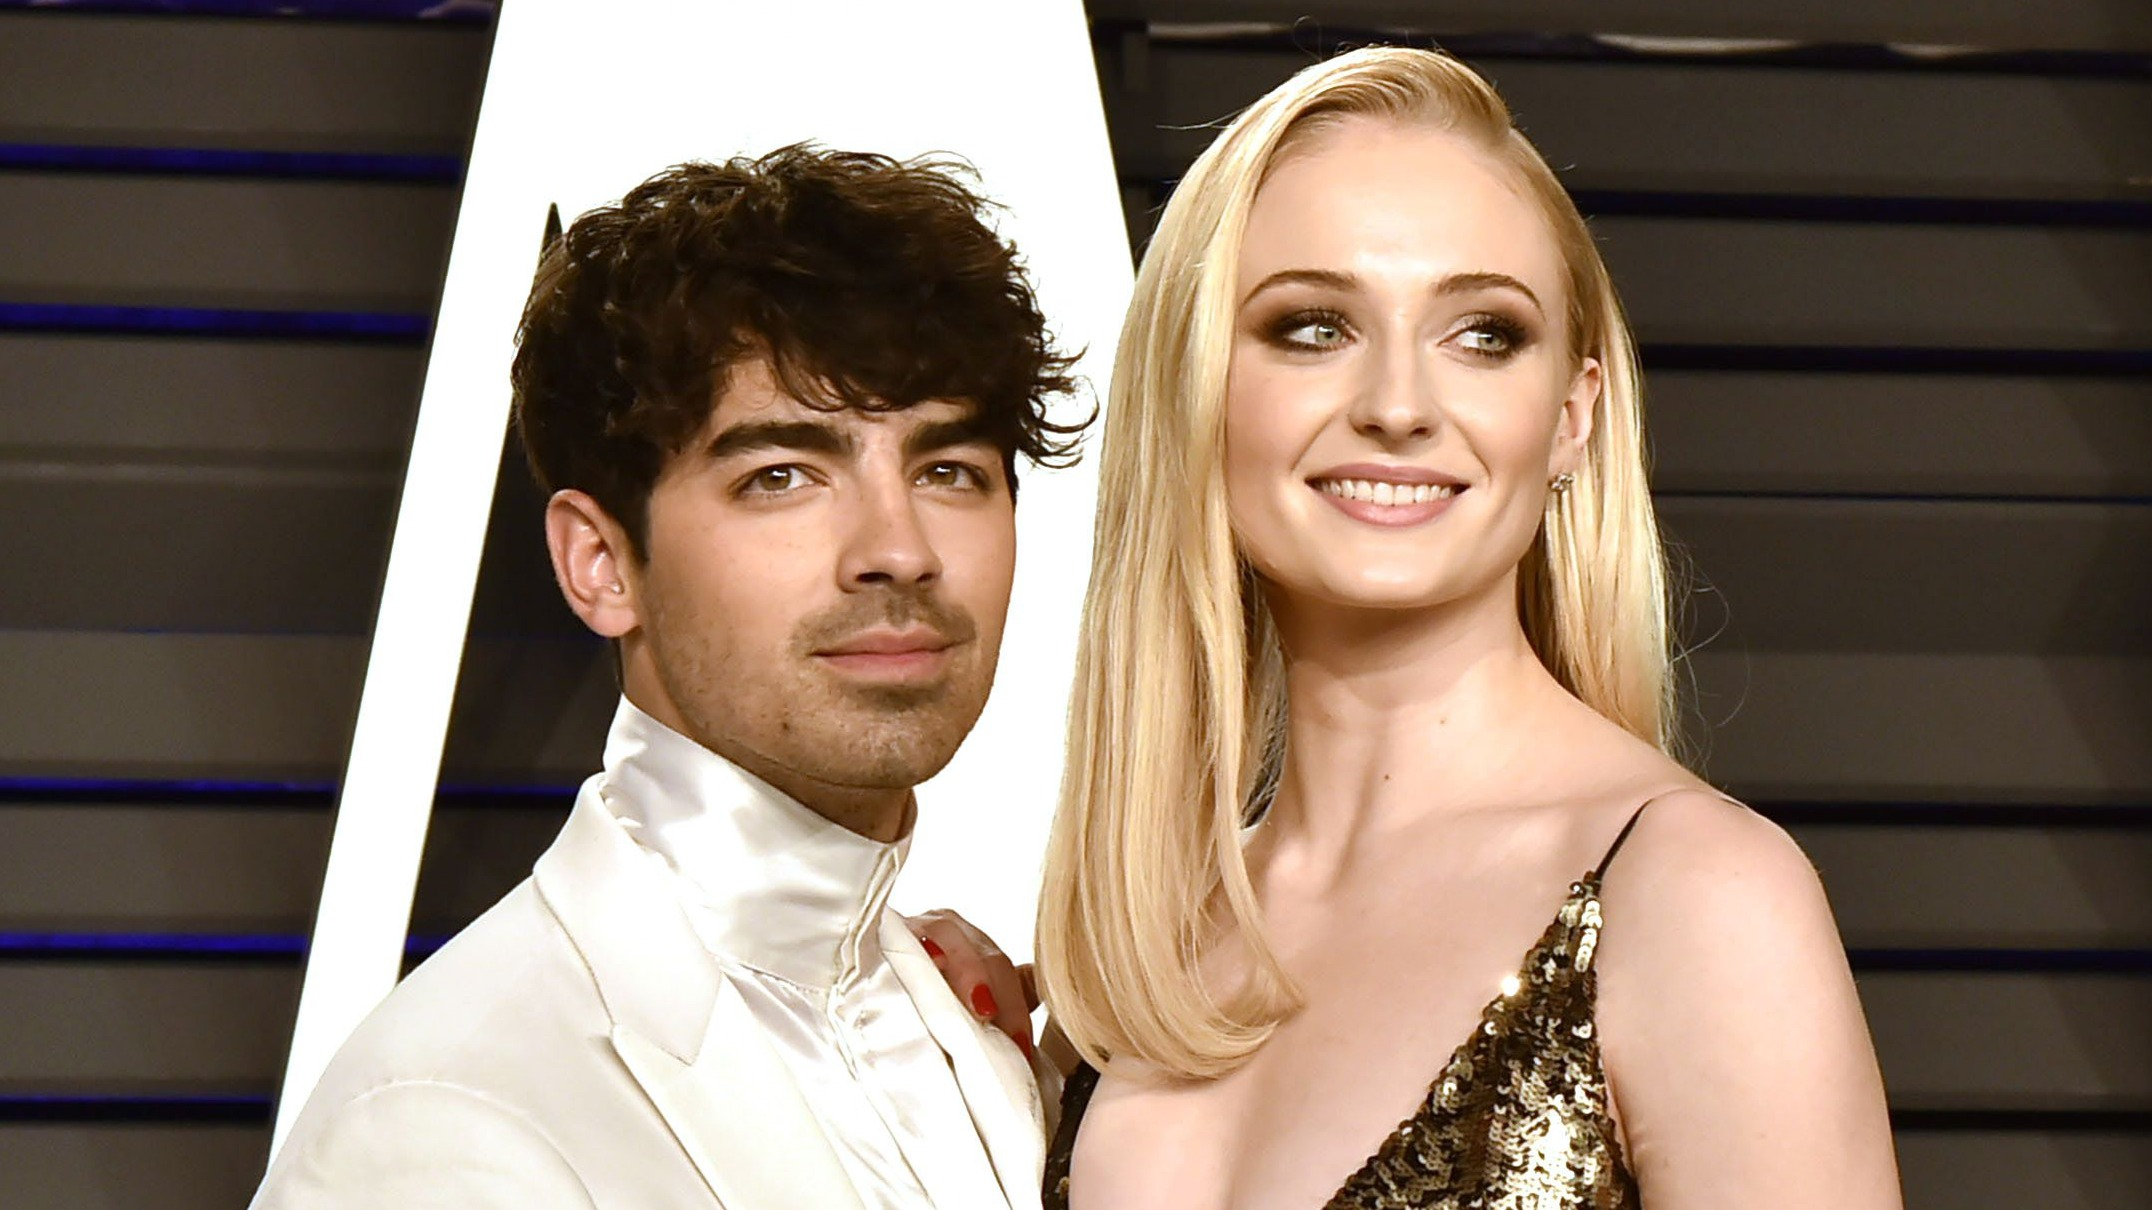 Joe jonas and sophie turner attend the 2019 vanity fair news photo 1132064135 1554128351